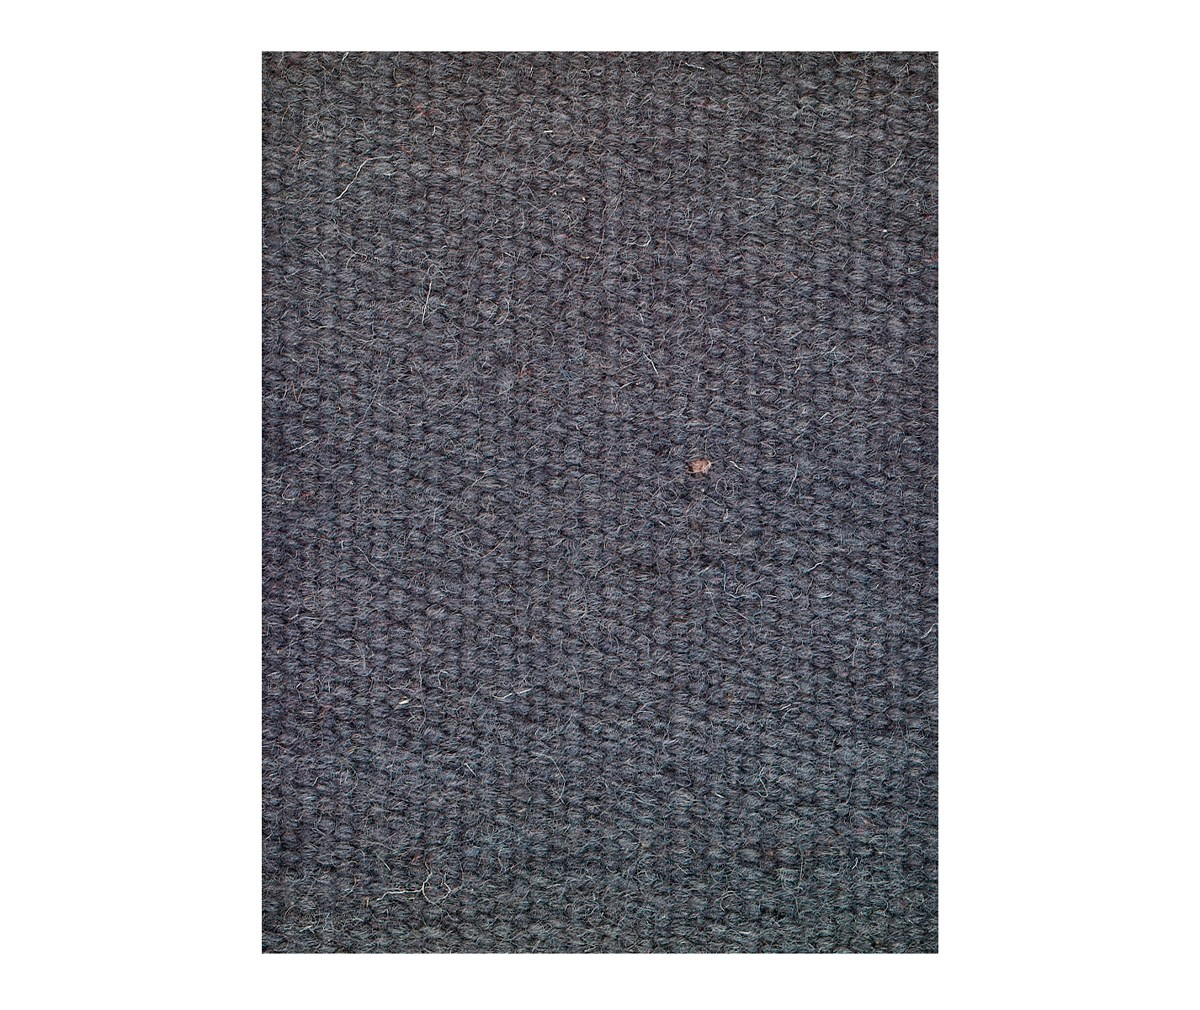 Roots Living Plain Wool vaip 170 x 240 cm, grafiithall